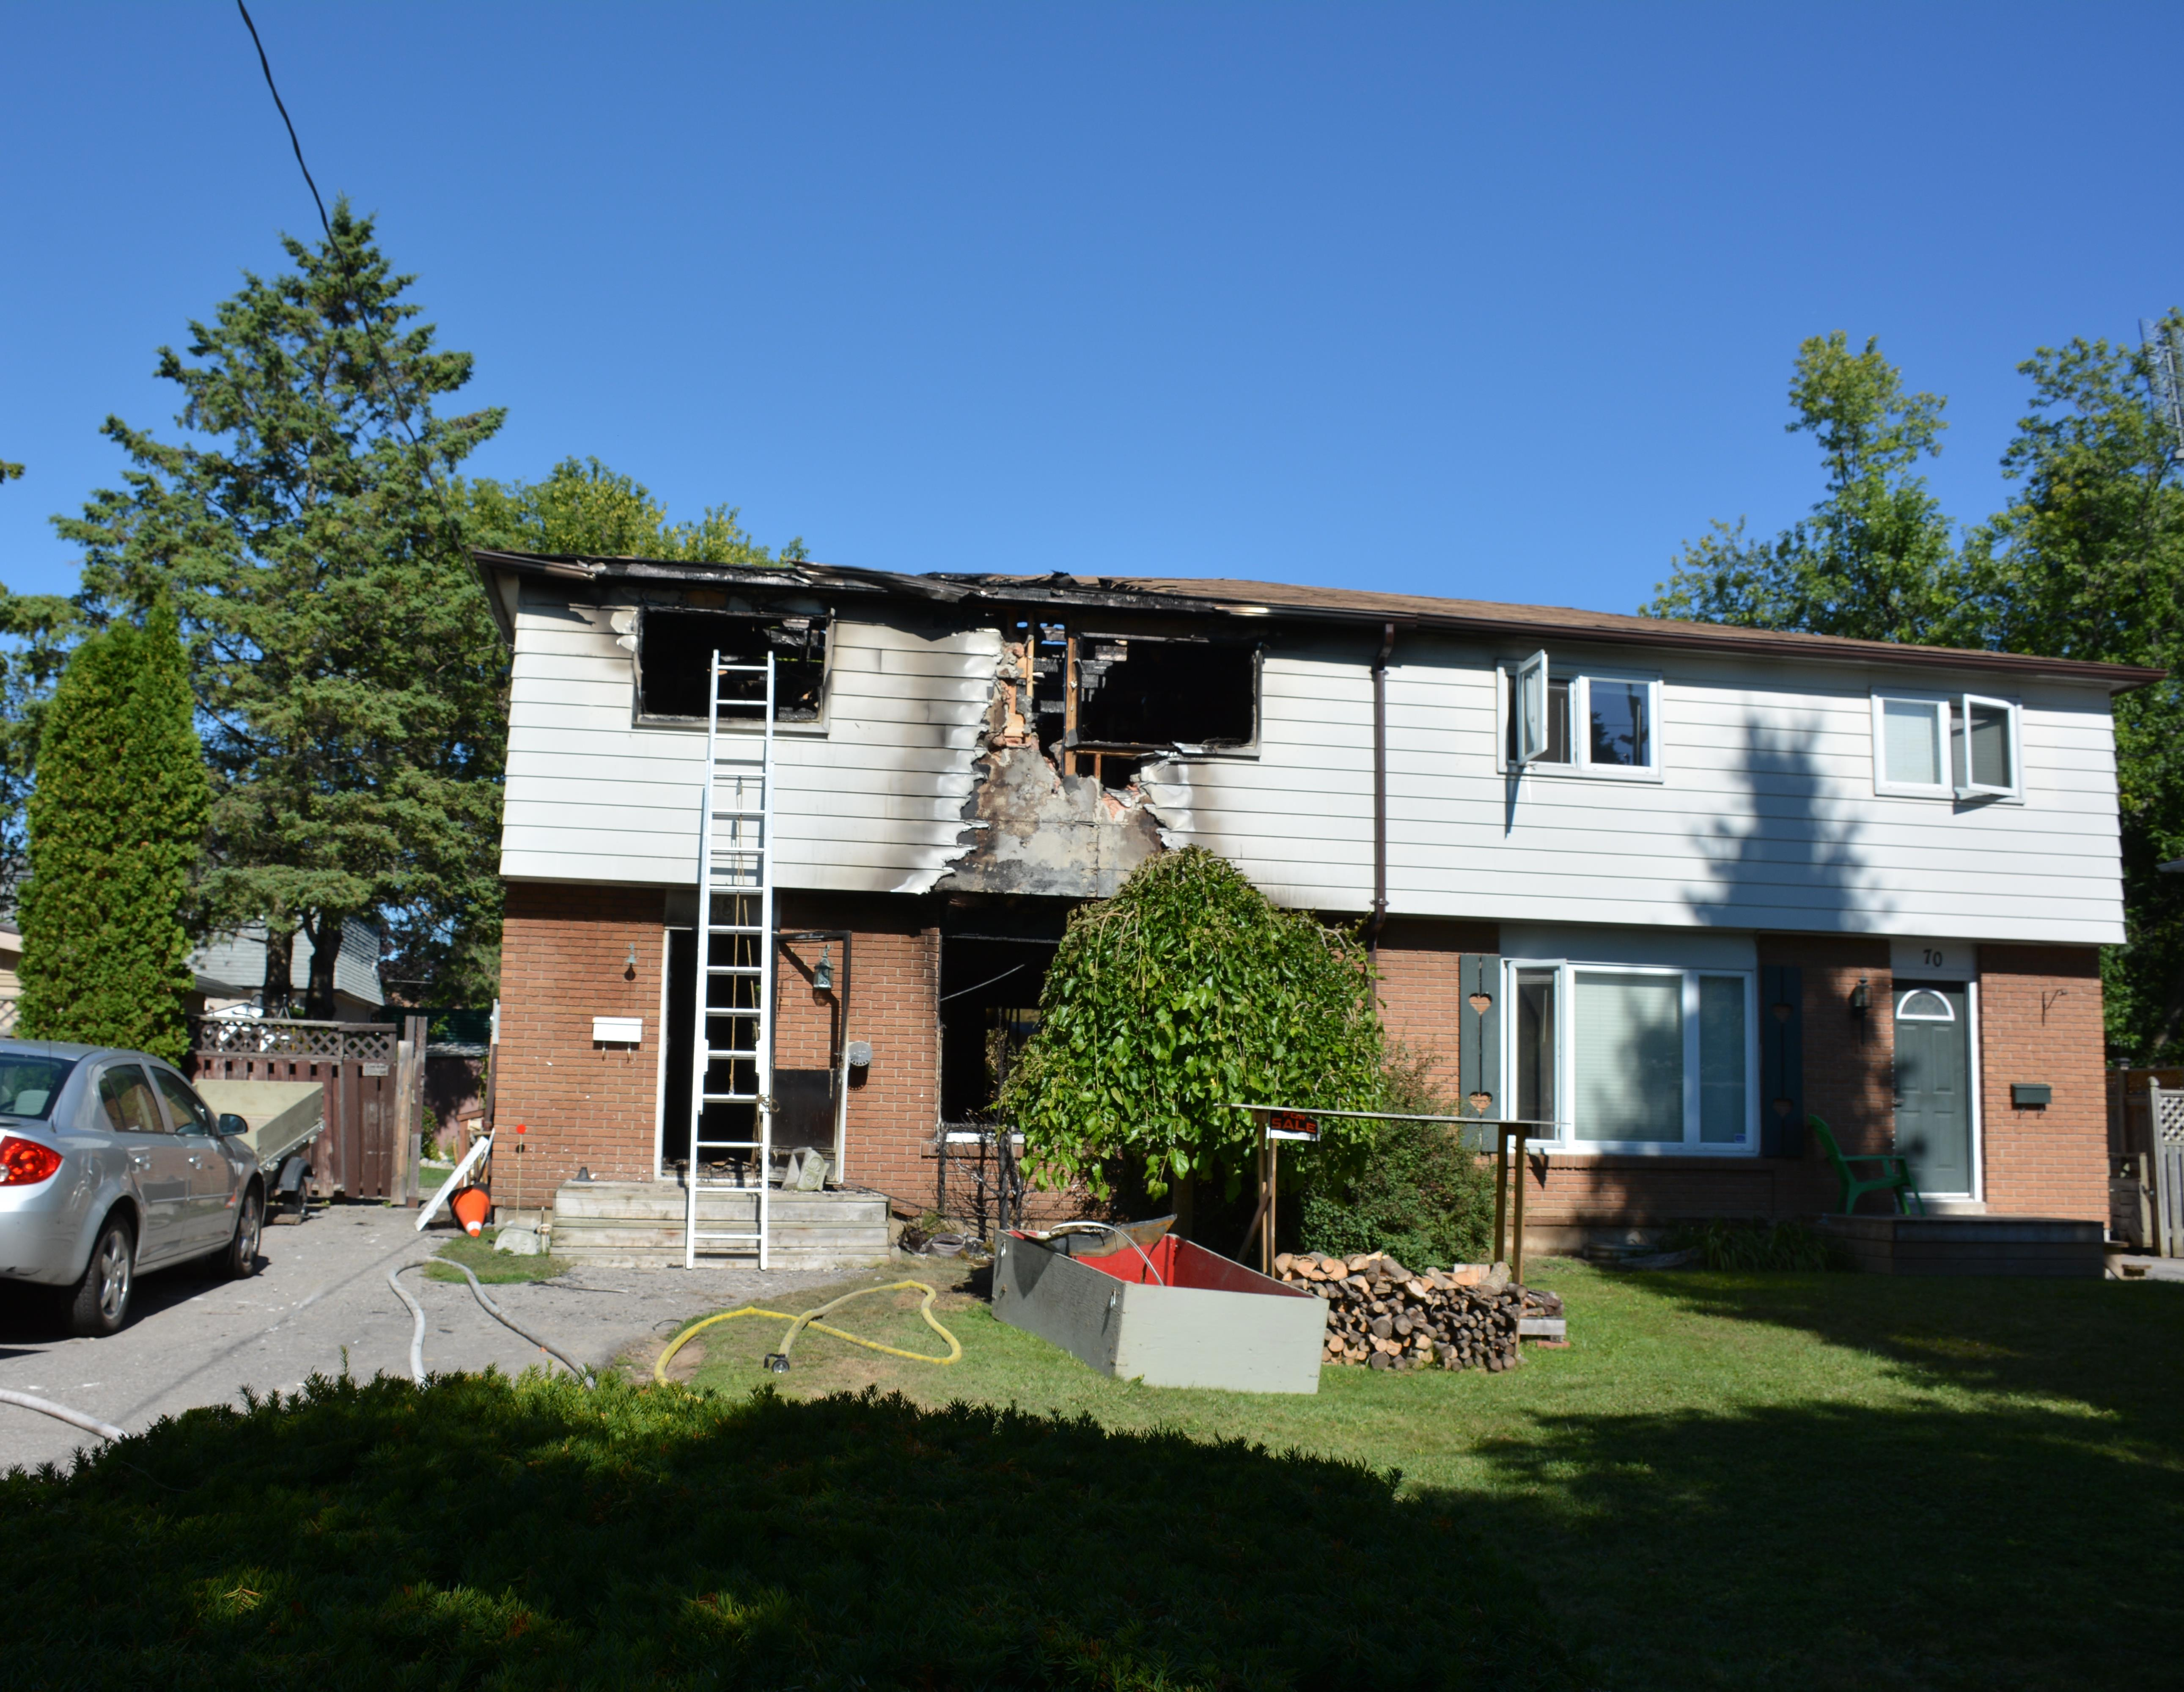 House damaged in fire